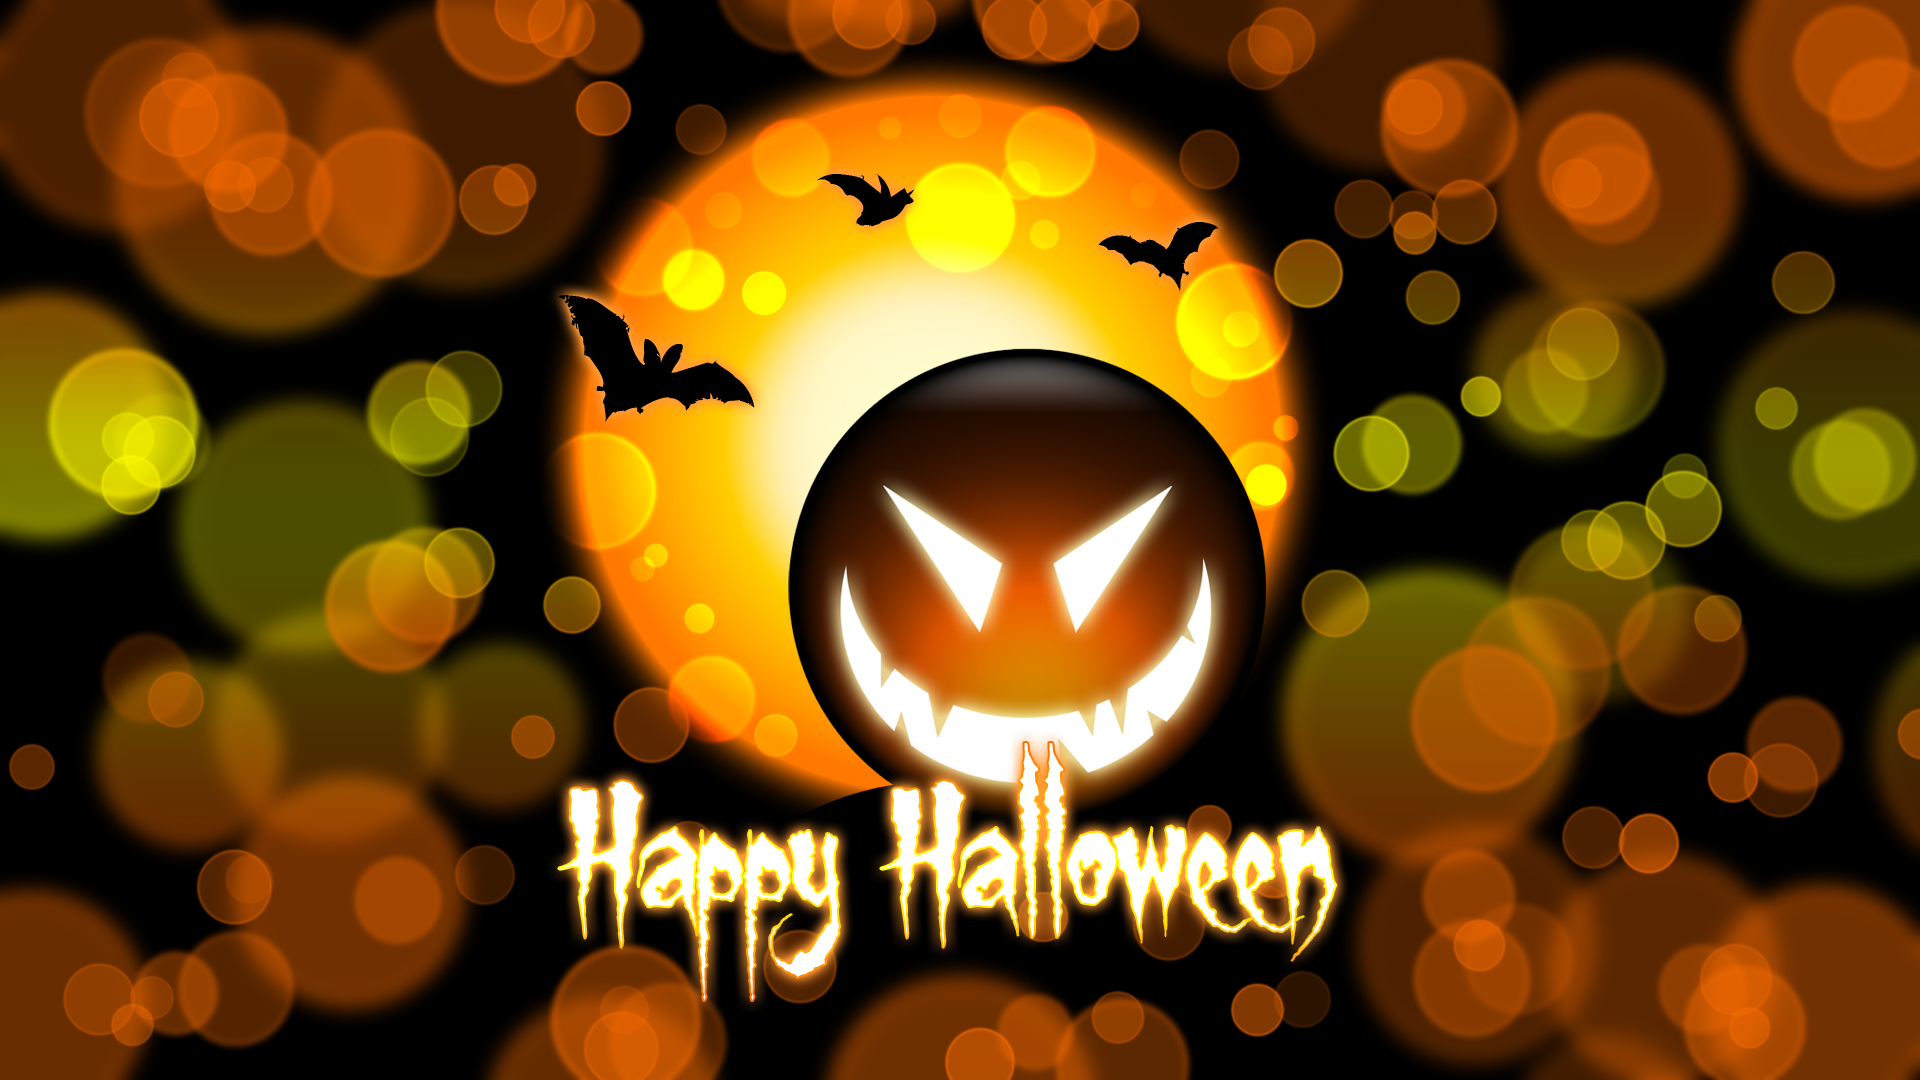 Happy halloween wallpapers really COOL Bratz Blog 1920x1080